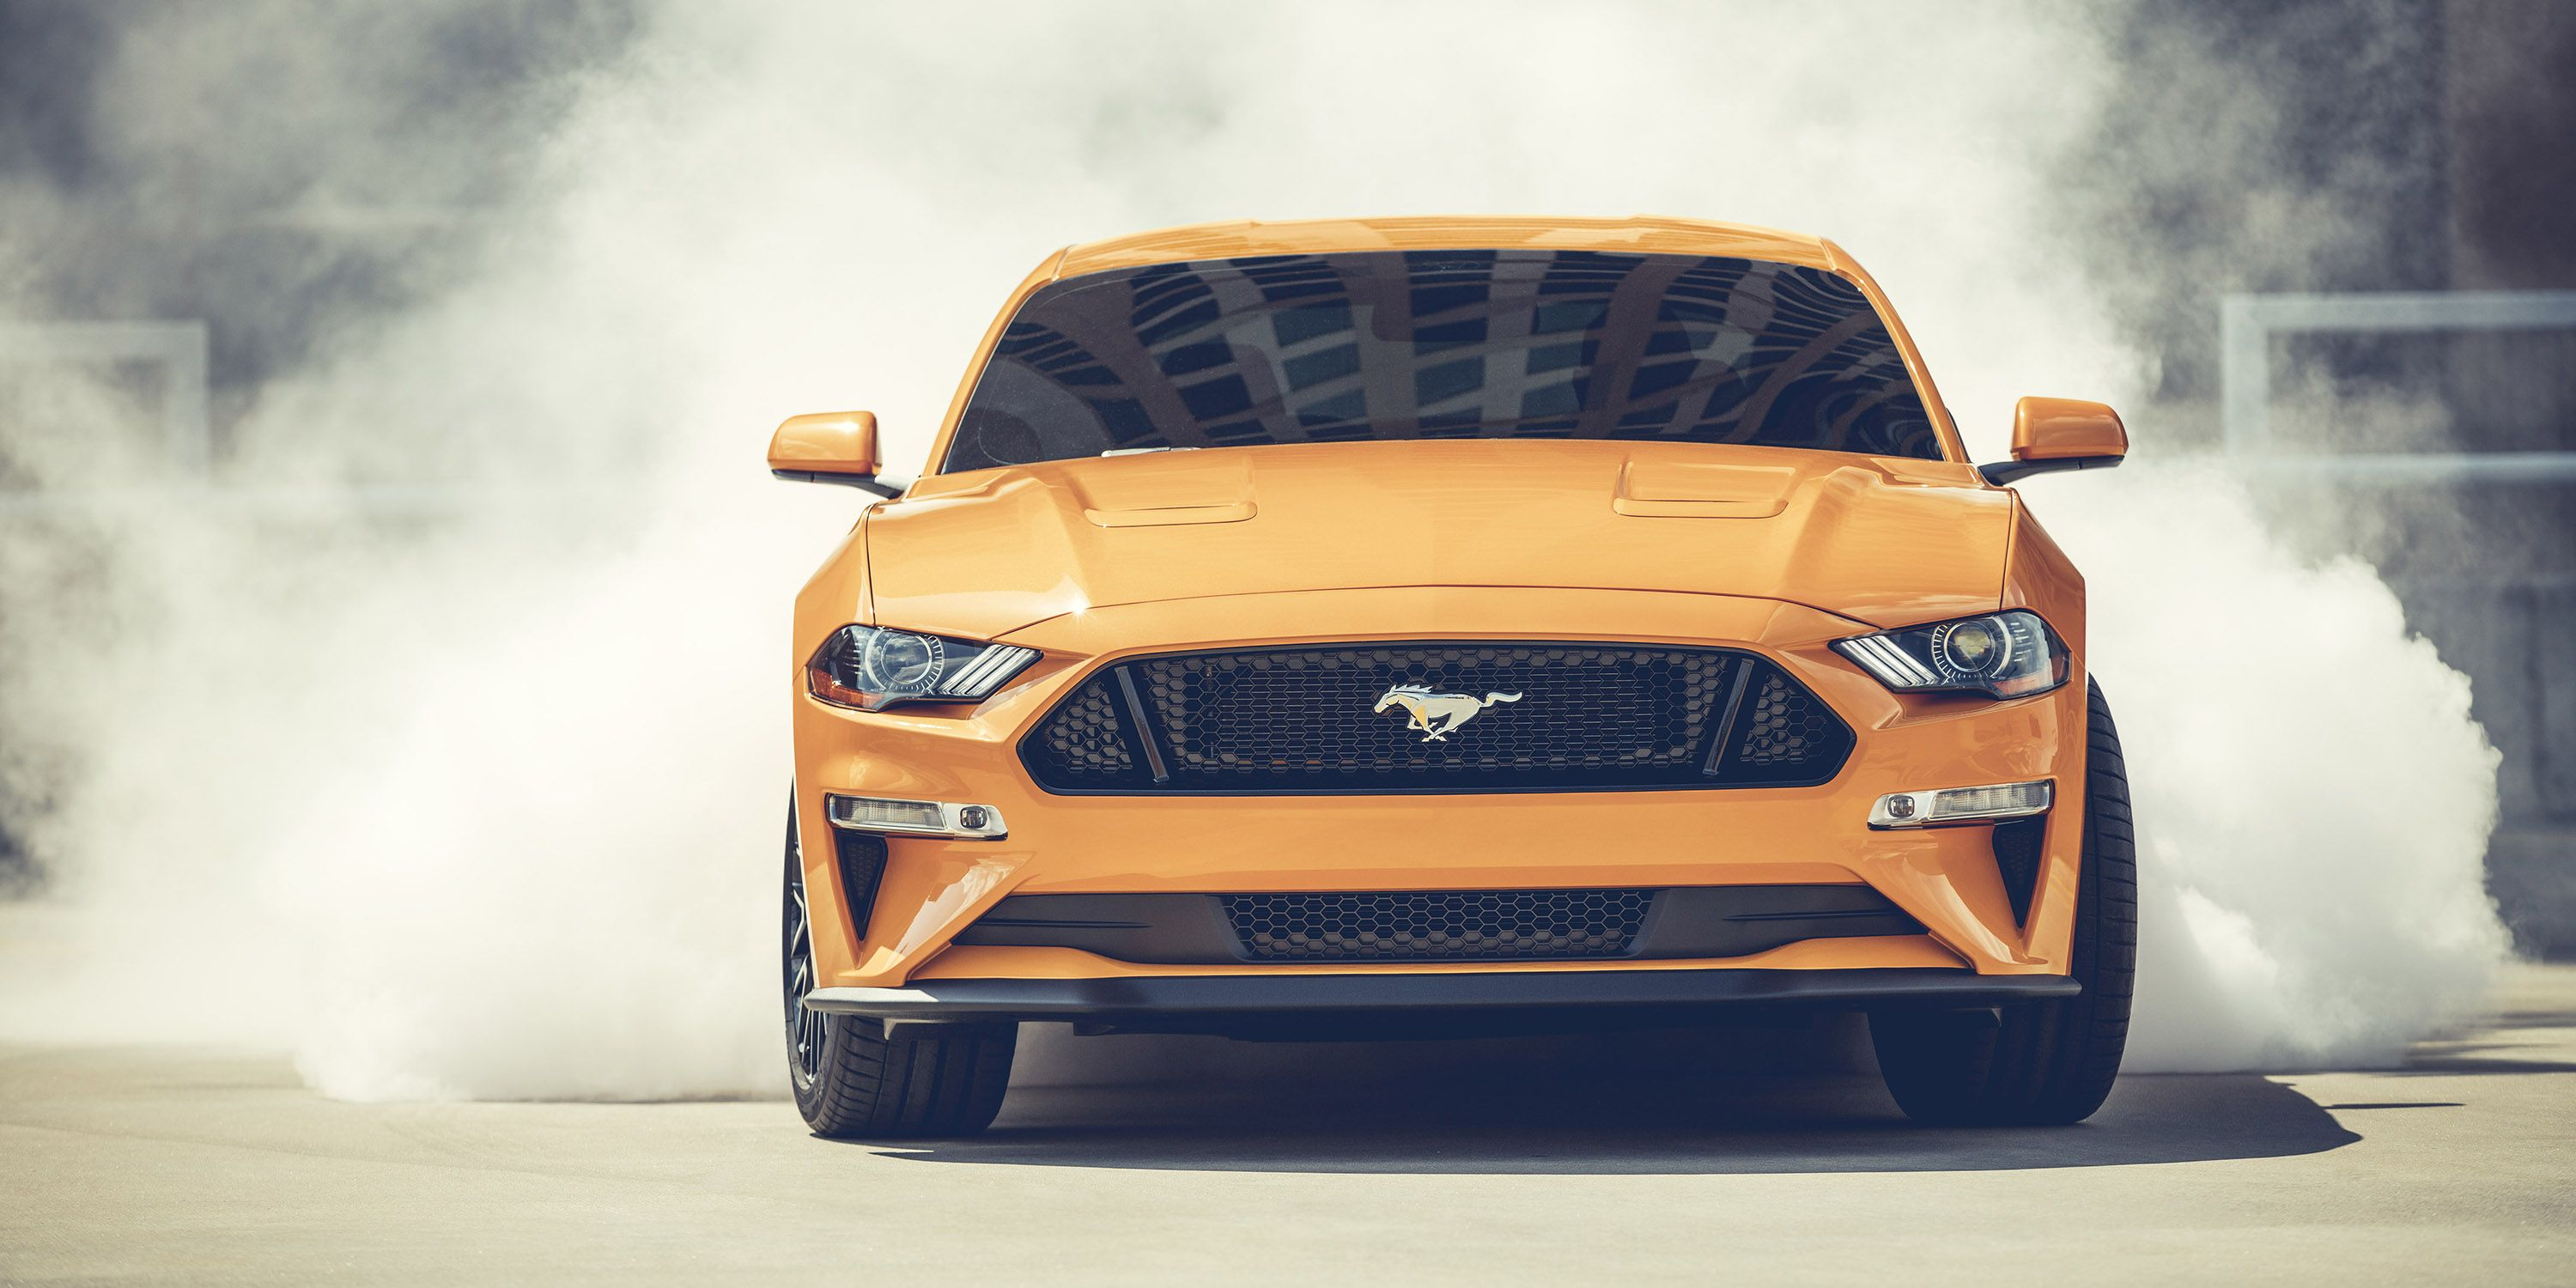 Ohio ford dealership is back with a brand new 800 hp supercharged mustang for 40000